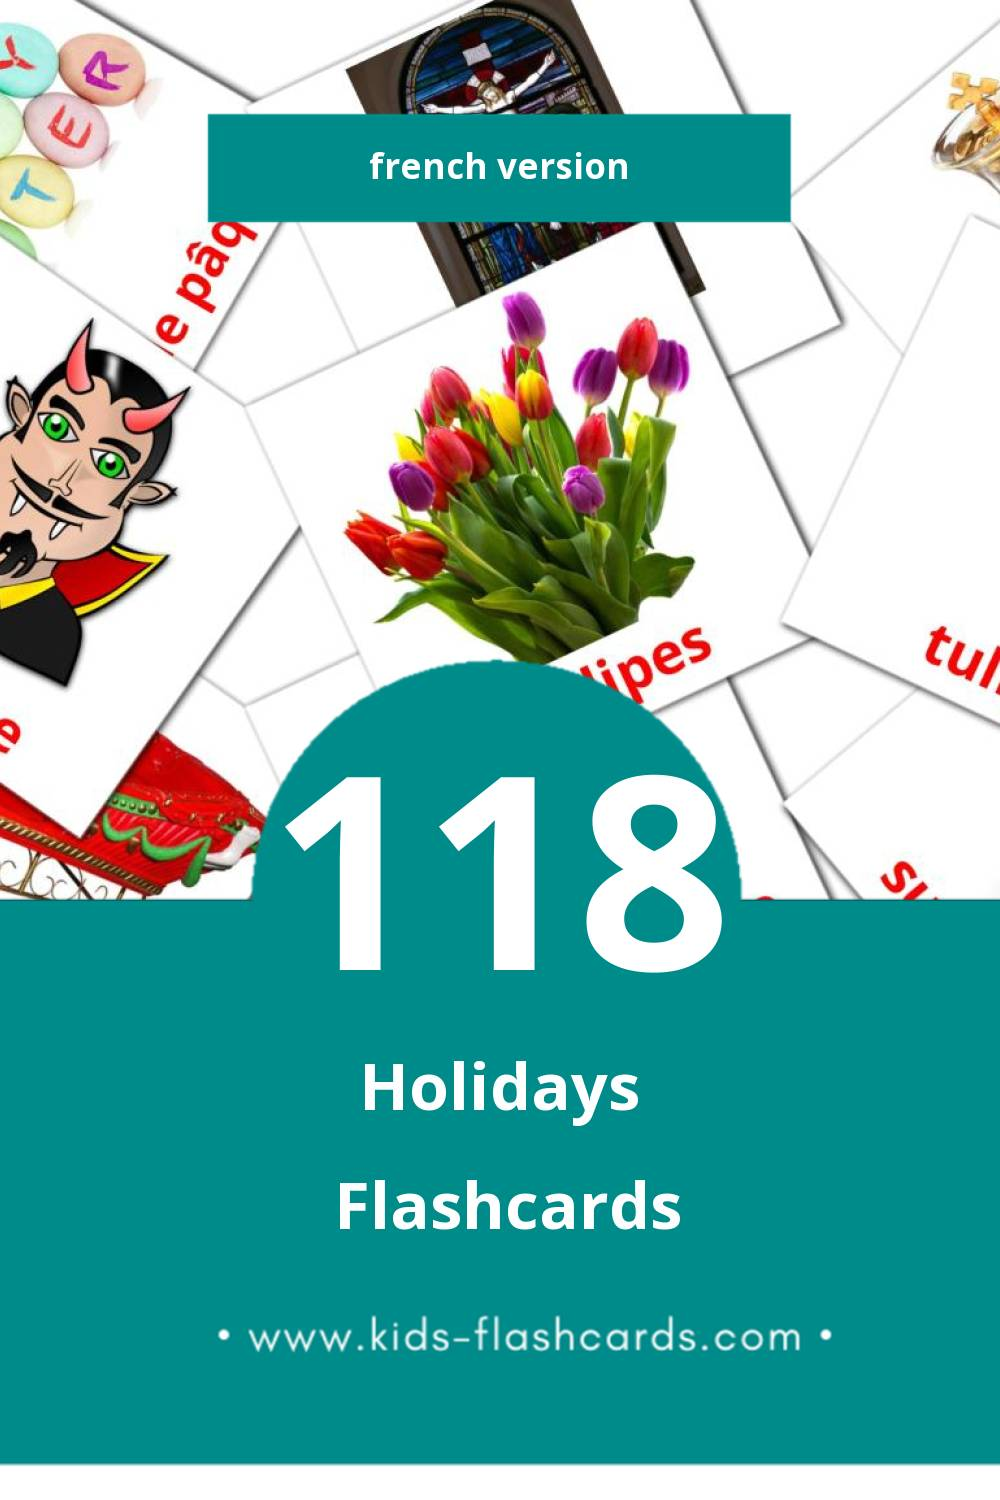 Visual Vacances Flashcards for Toddlers (87 cards in French)